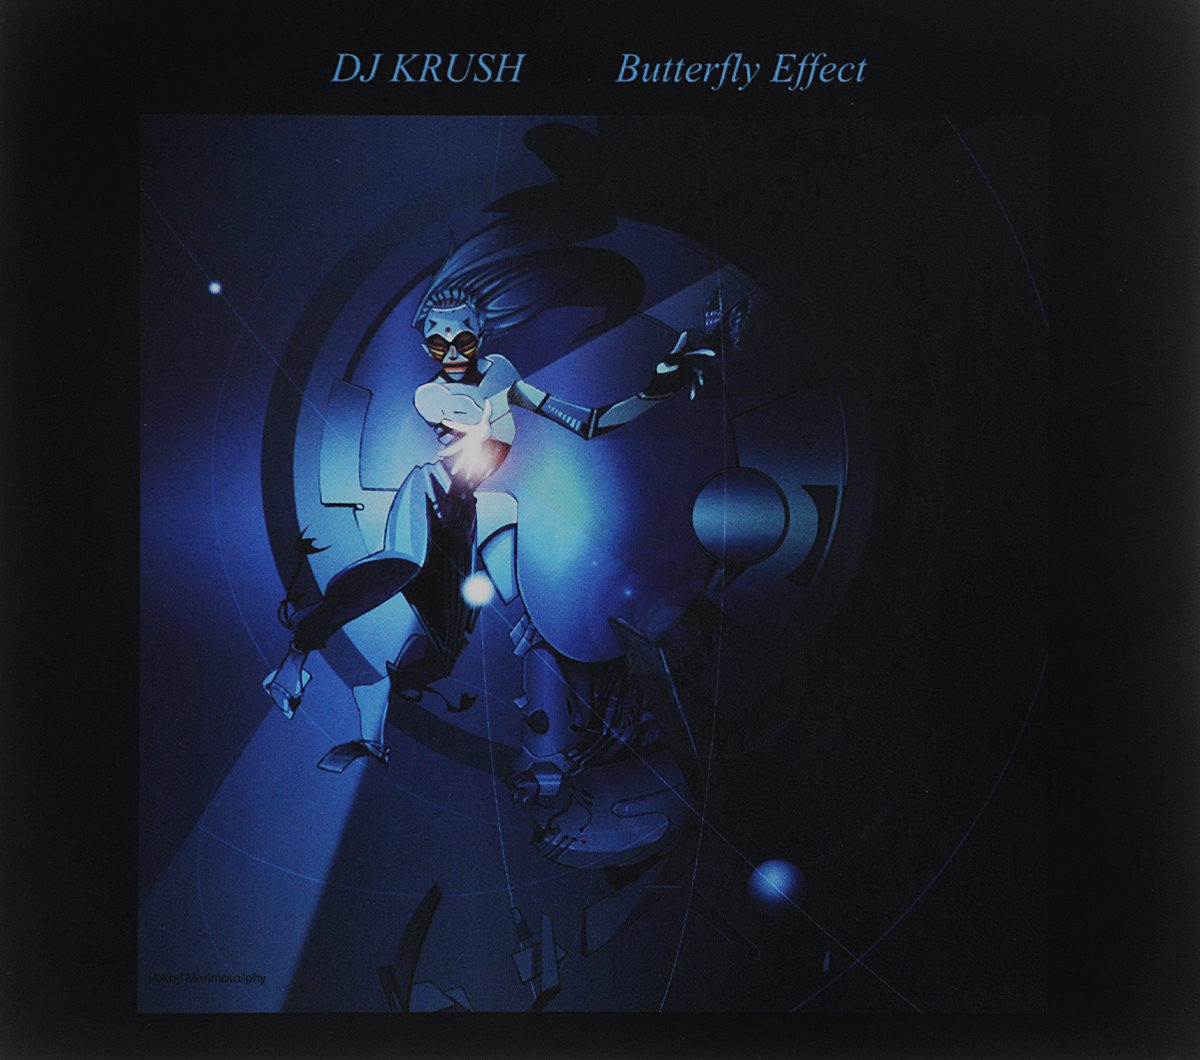 Dj Krush. Butterfly Effect